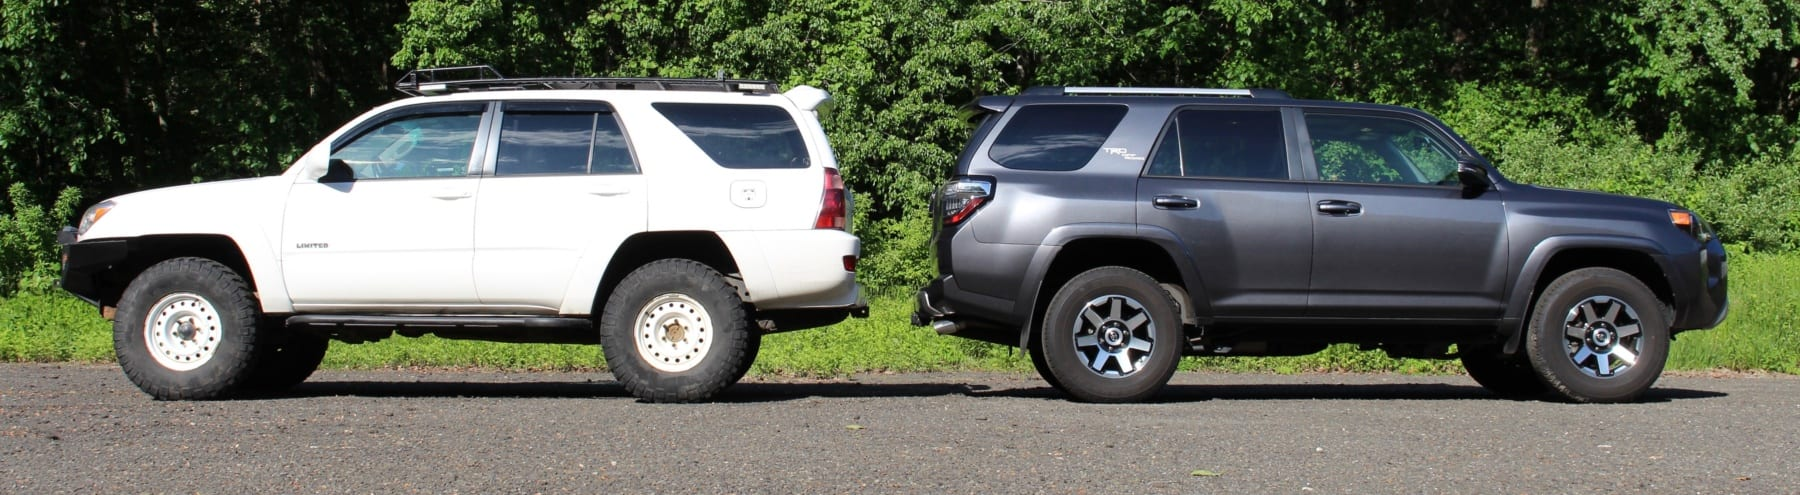 4th gen Toyota 4Runner vs 5th gen Toyota 4Runner